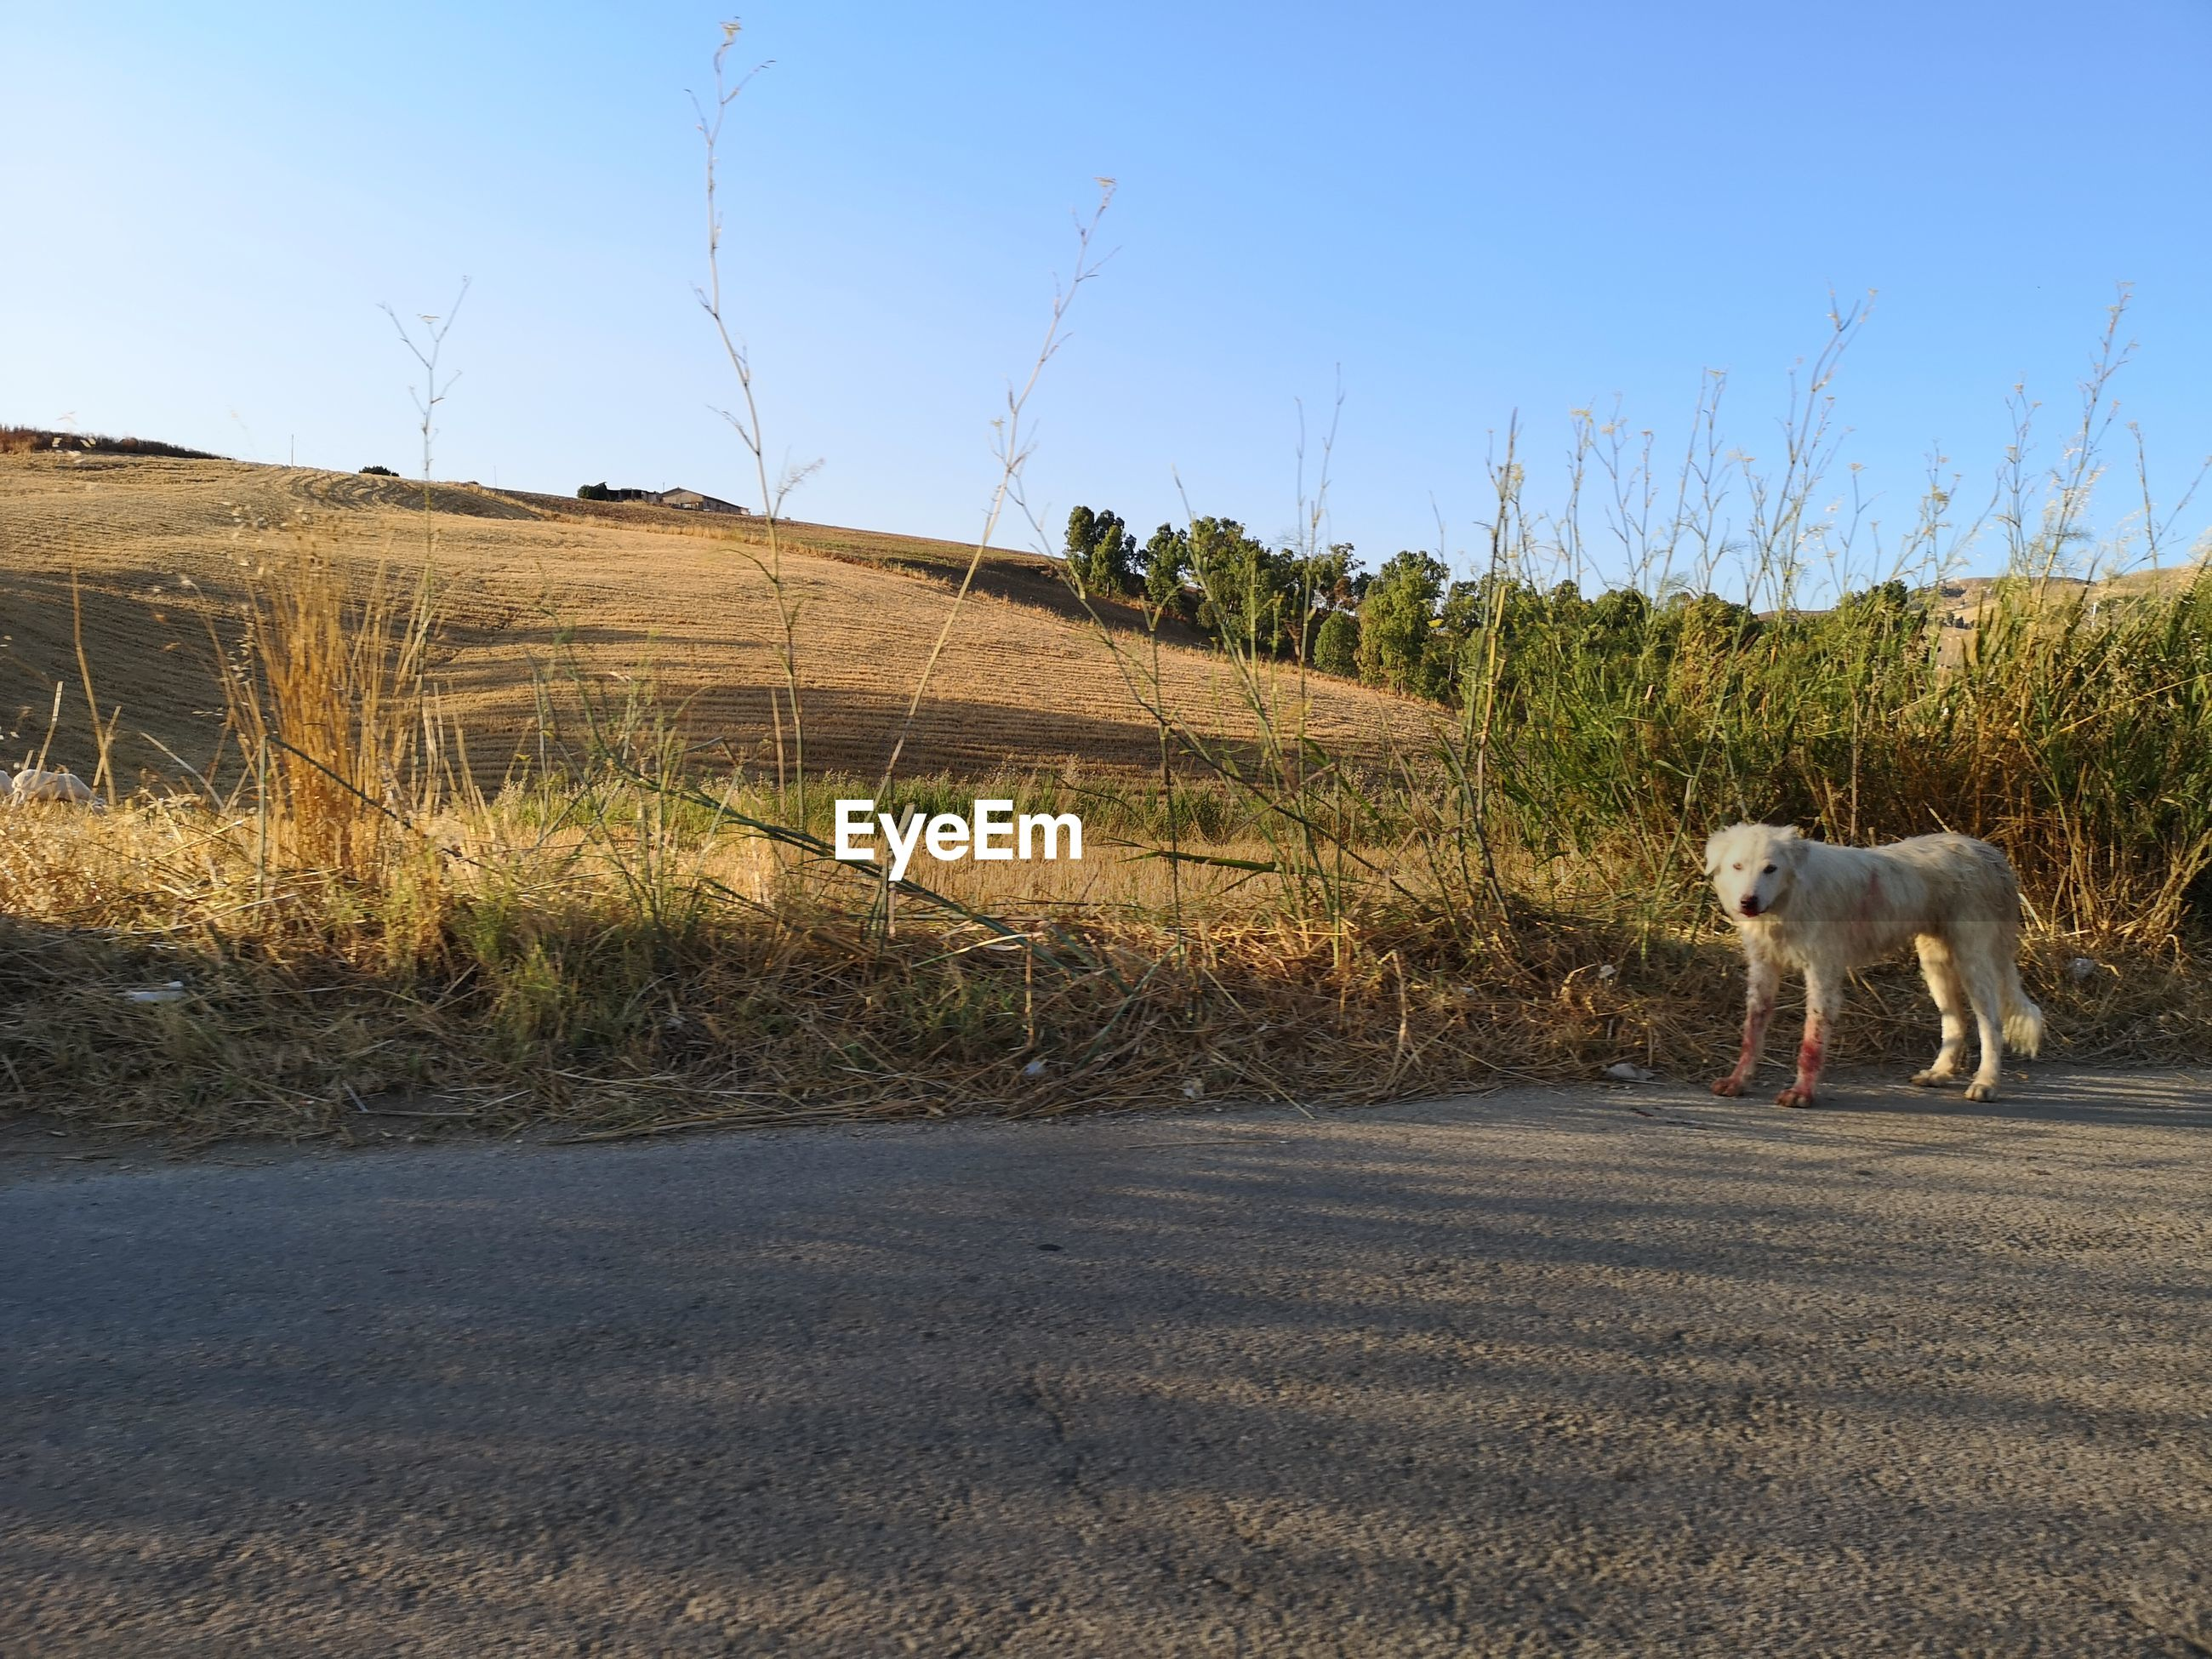 DOG STANDING ON ROAD AMIDST FIELD